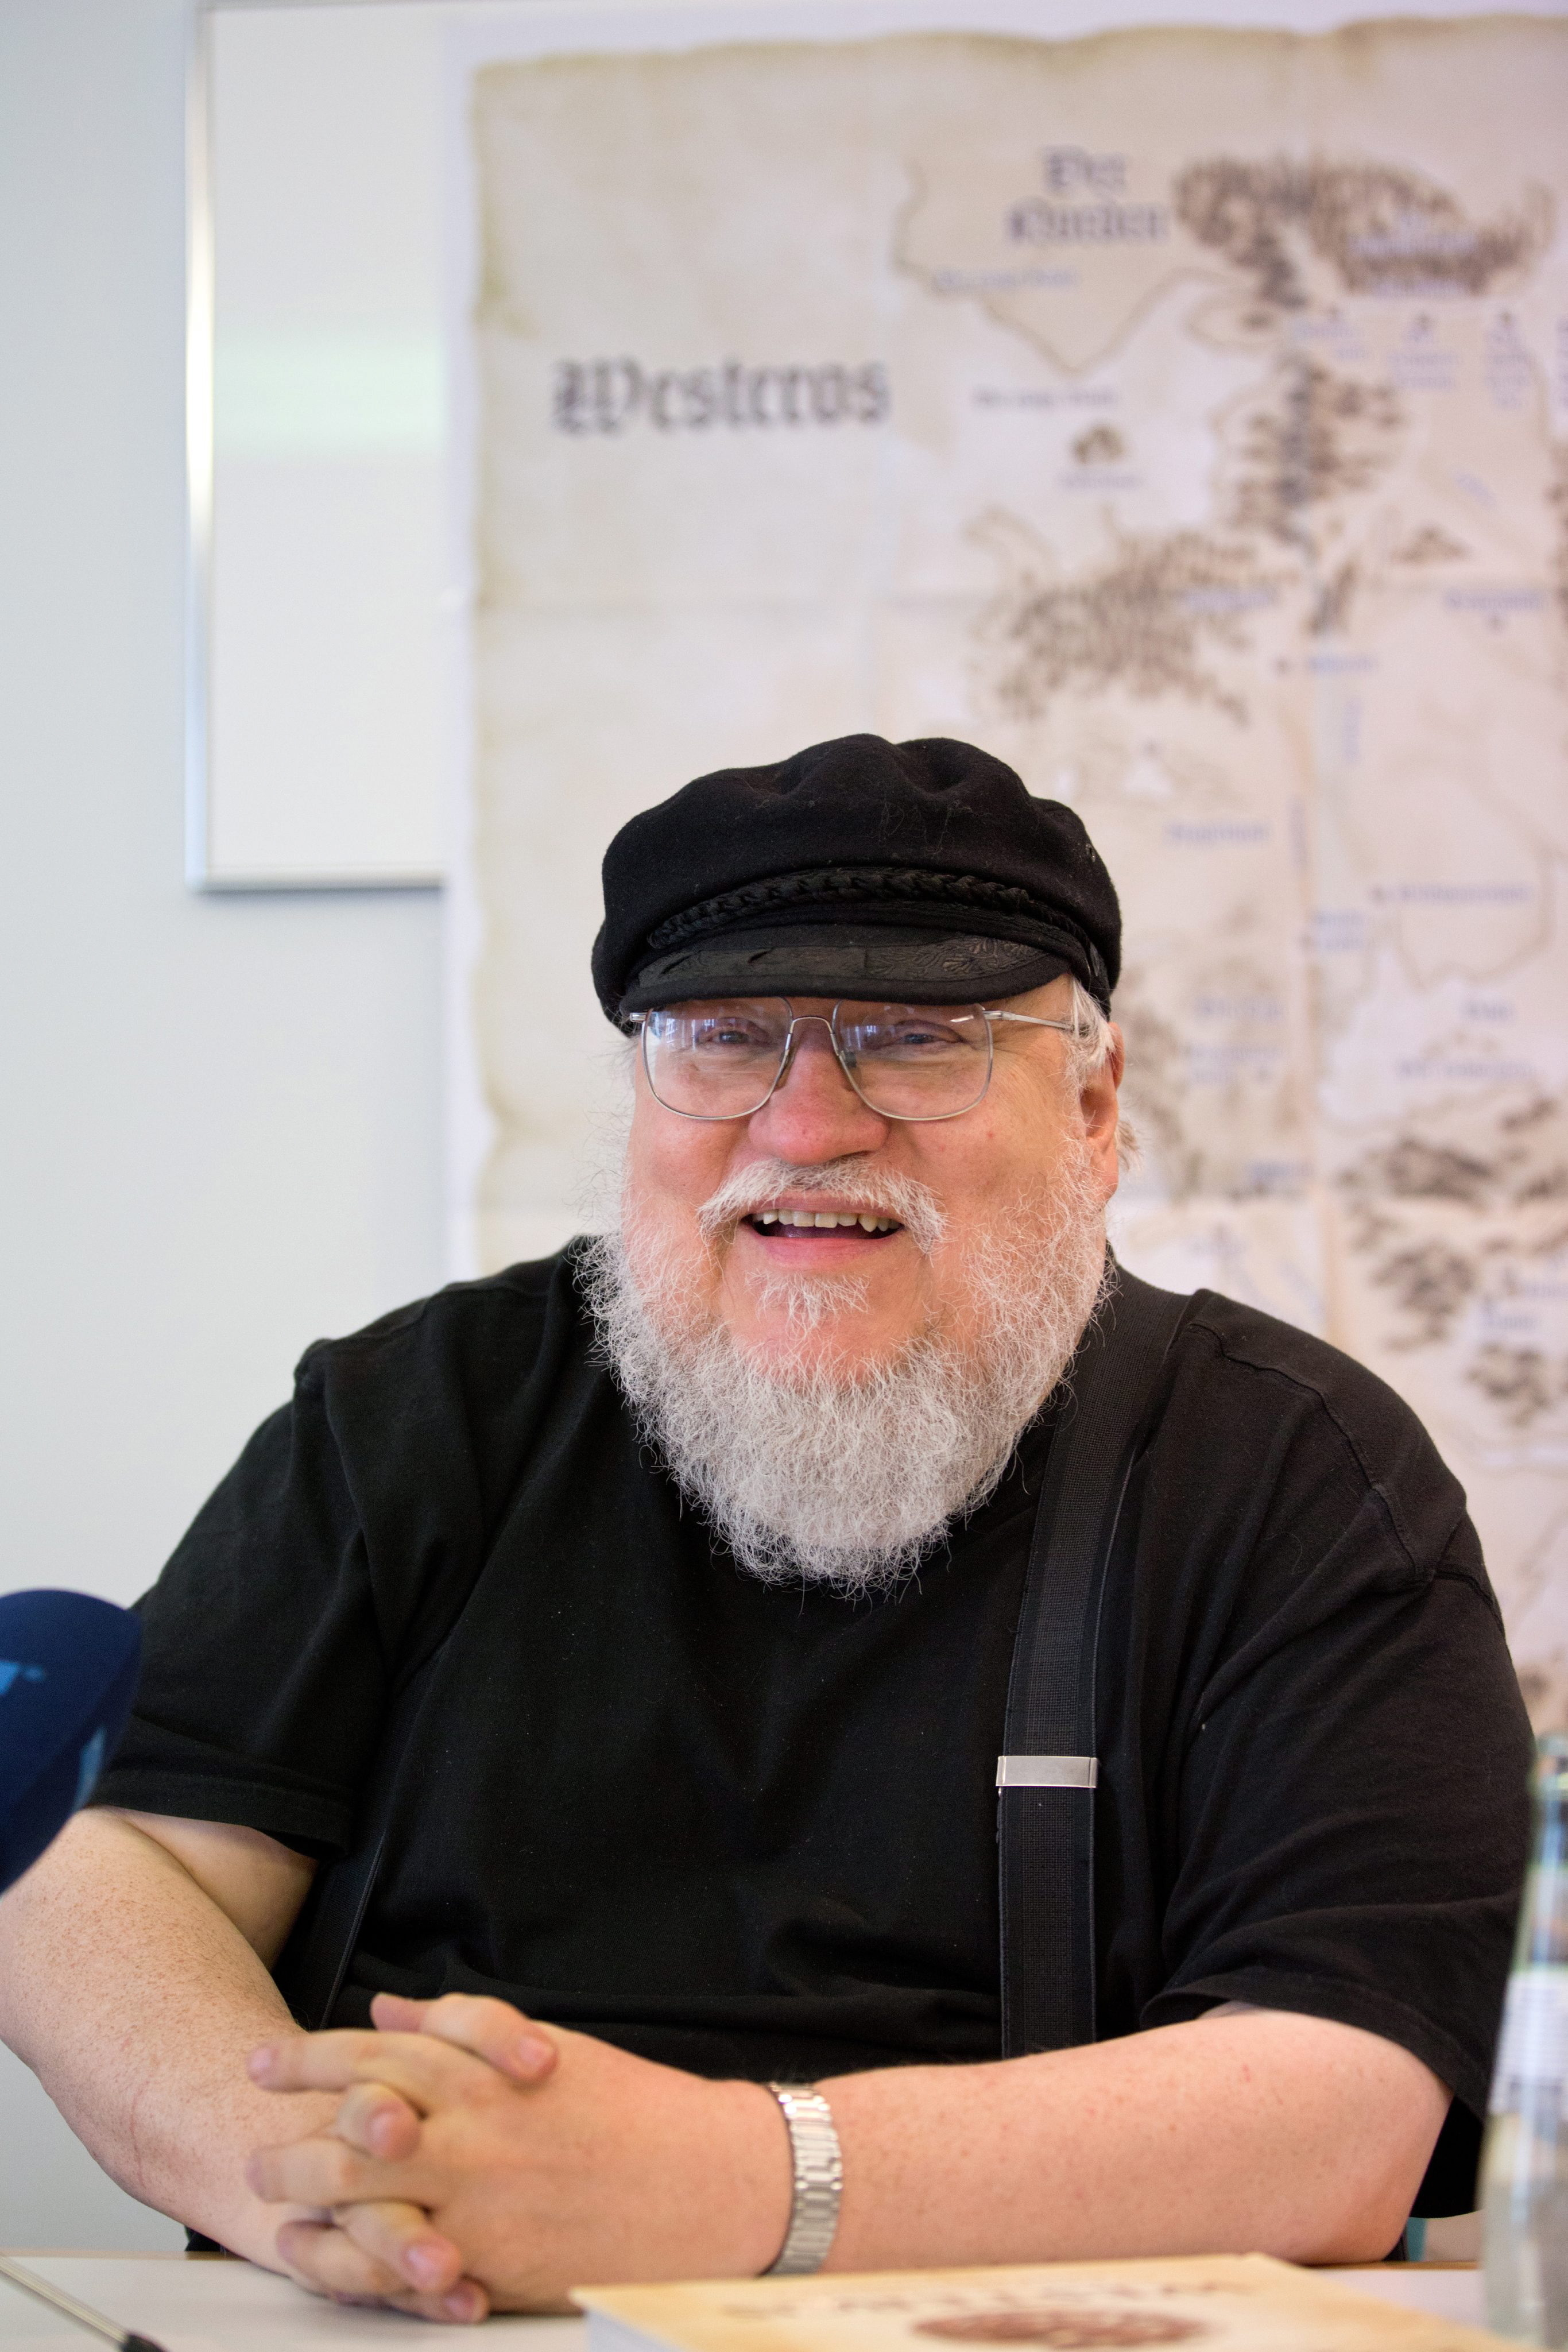 George R. R. Martin Is In Self-Isolation And Is Finally Finishing Game Of Thrones Books